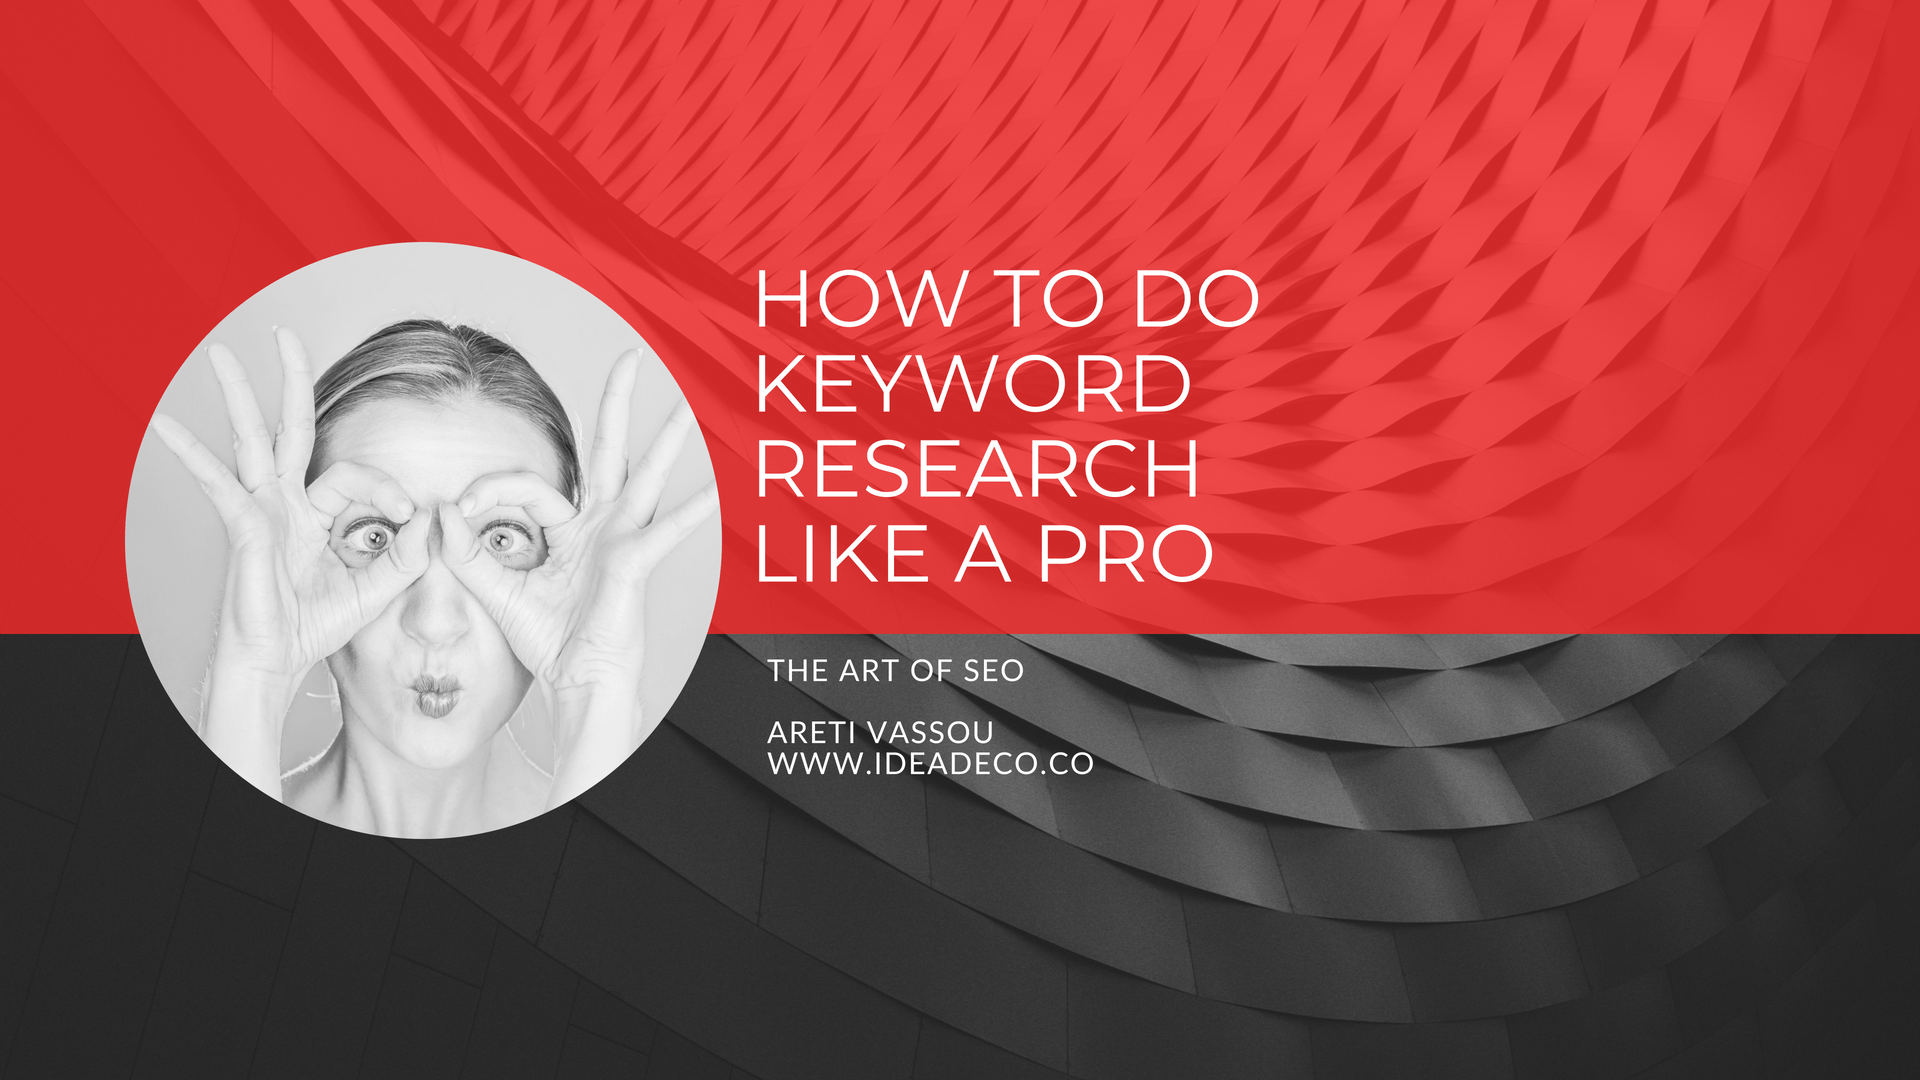 How to do Keyword Research like a Pro - Areti Vassou Ideadeco